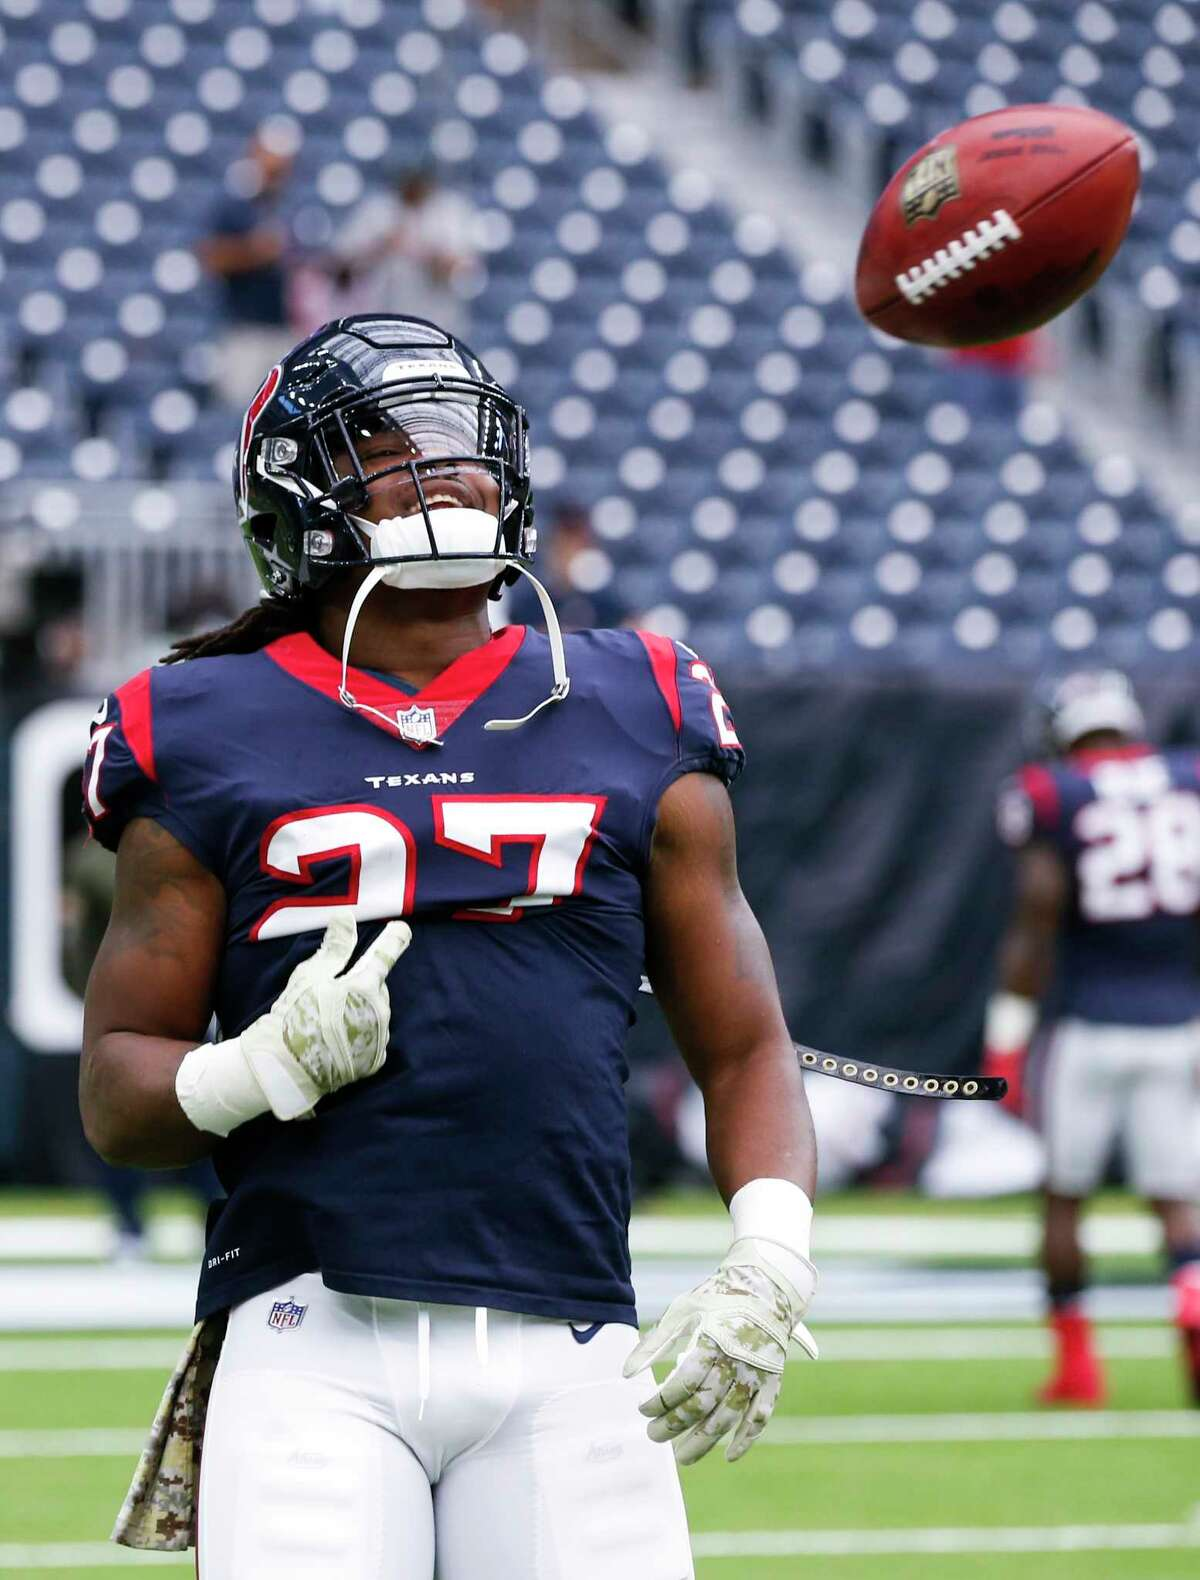 Houston Texans running back D'Onta Foreman (27) tosses a ball after catching a kick while warming up before an NFL football game at NRG Stadium on Sunday, Nov. 5, 2017, in Houston.